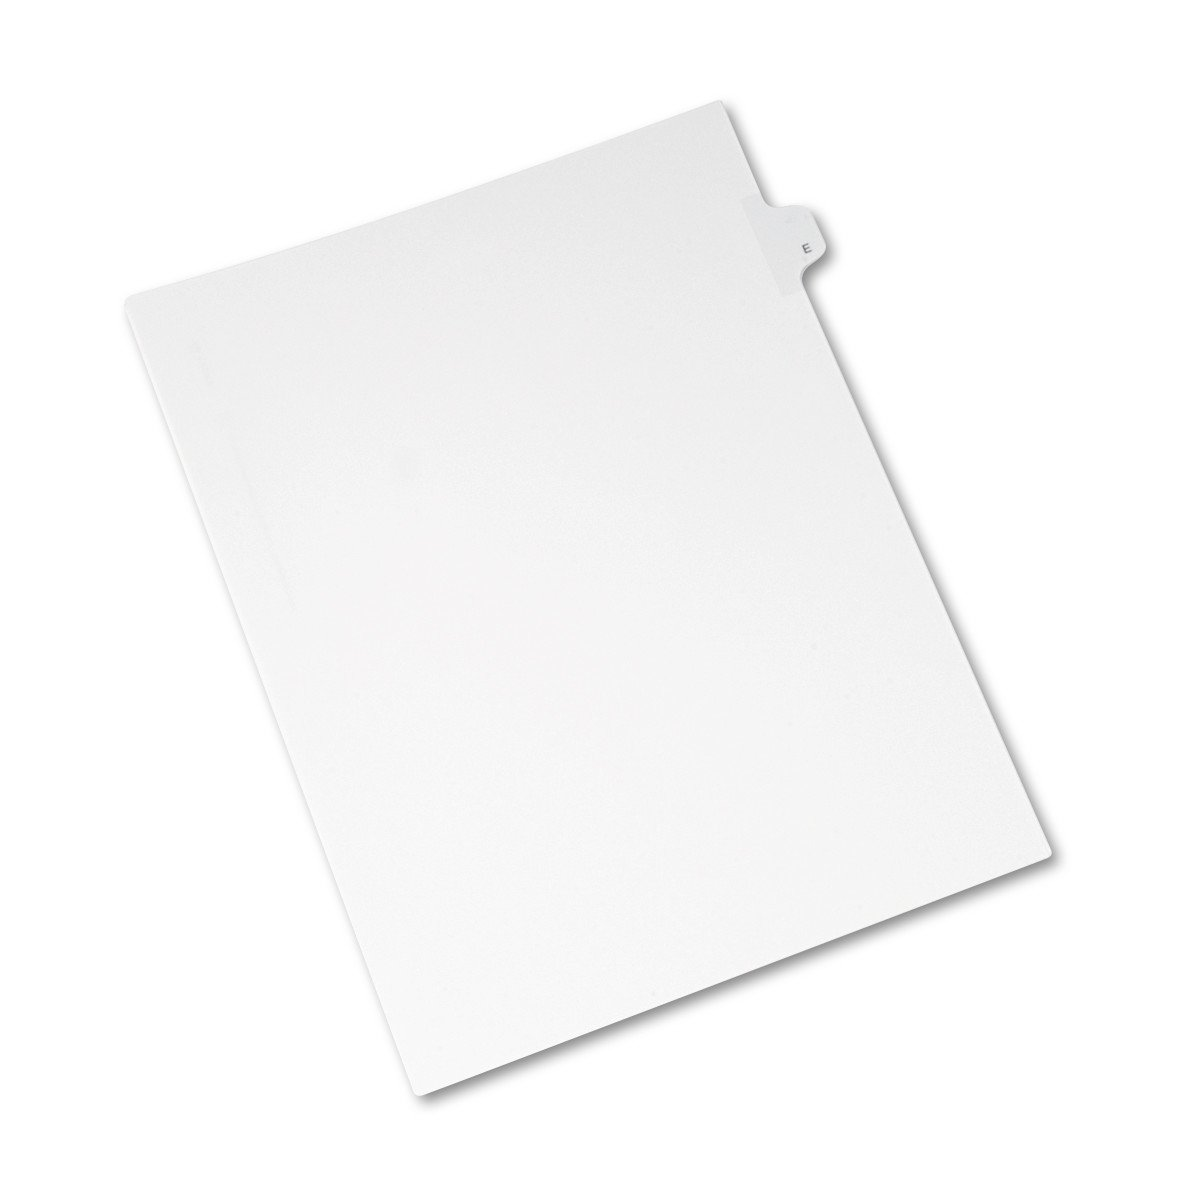 Avery Individual Legal Exhibit Dividers, Allstate Style, E, Side Tab, 8.5 x 11 inches, Pack of 25 (82167)